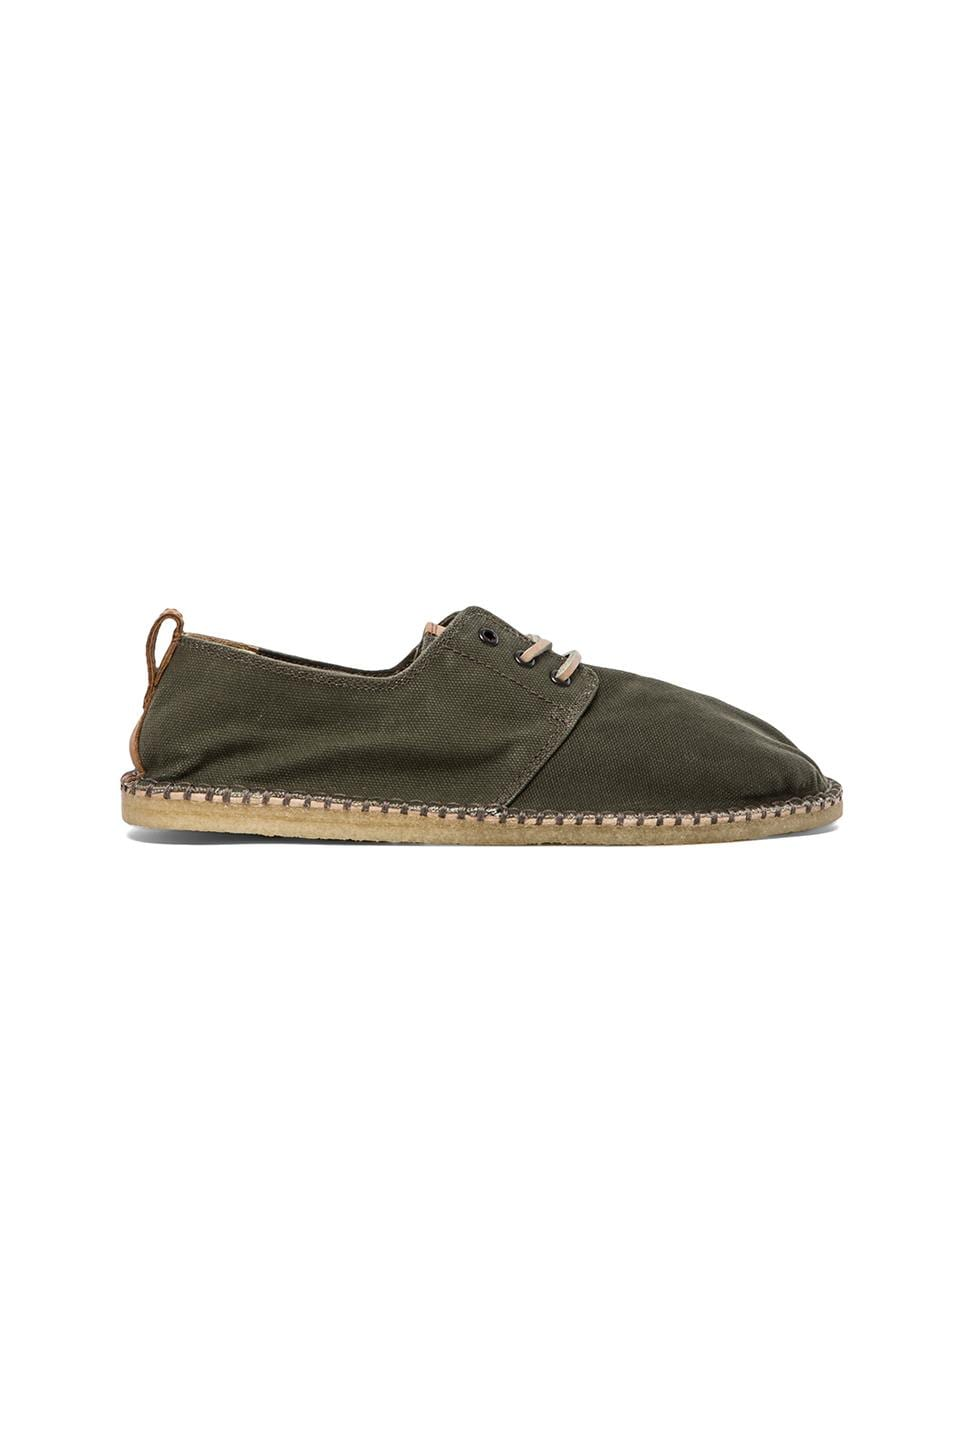 Clarks Originals Pikko Solo in Green